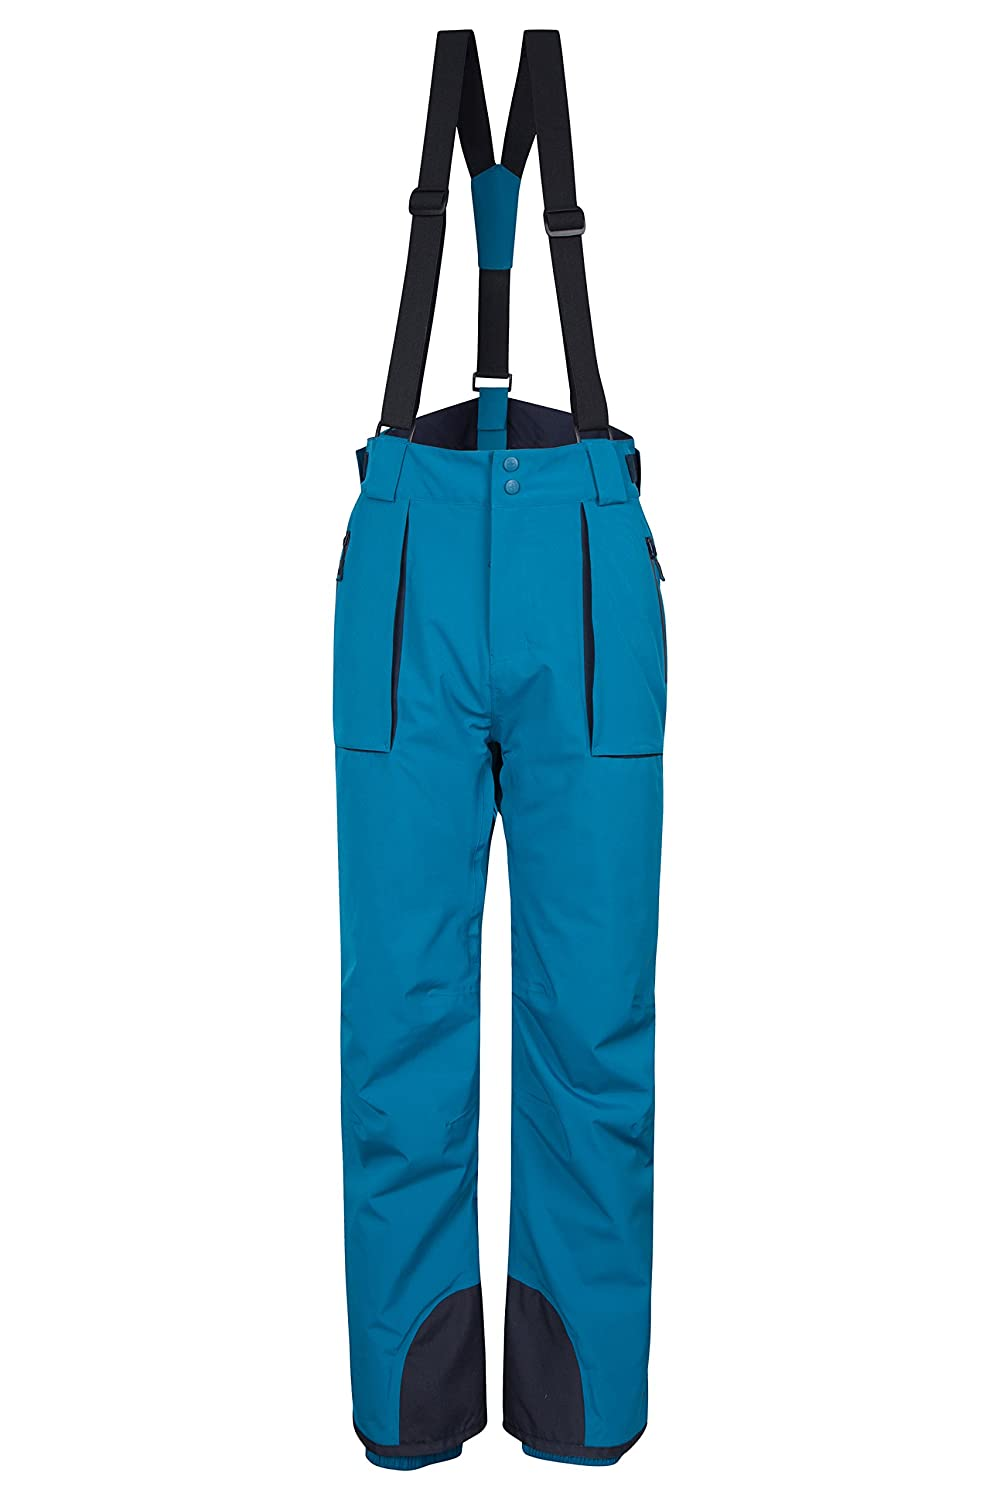 Mountain Warehouse Spectrum Extreme Men's Ski Pants - Waterproof, Breathable IsoDry Fabric with Taped Seams & Soft Padded Insulation -Provides Protection While Skiing